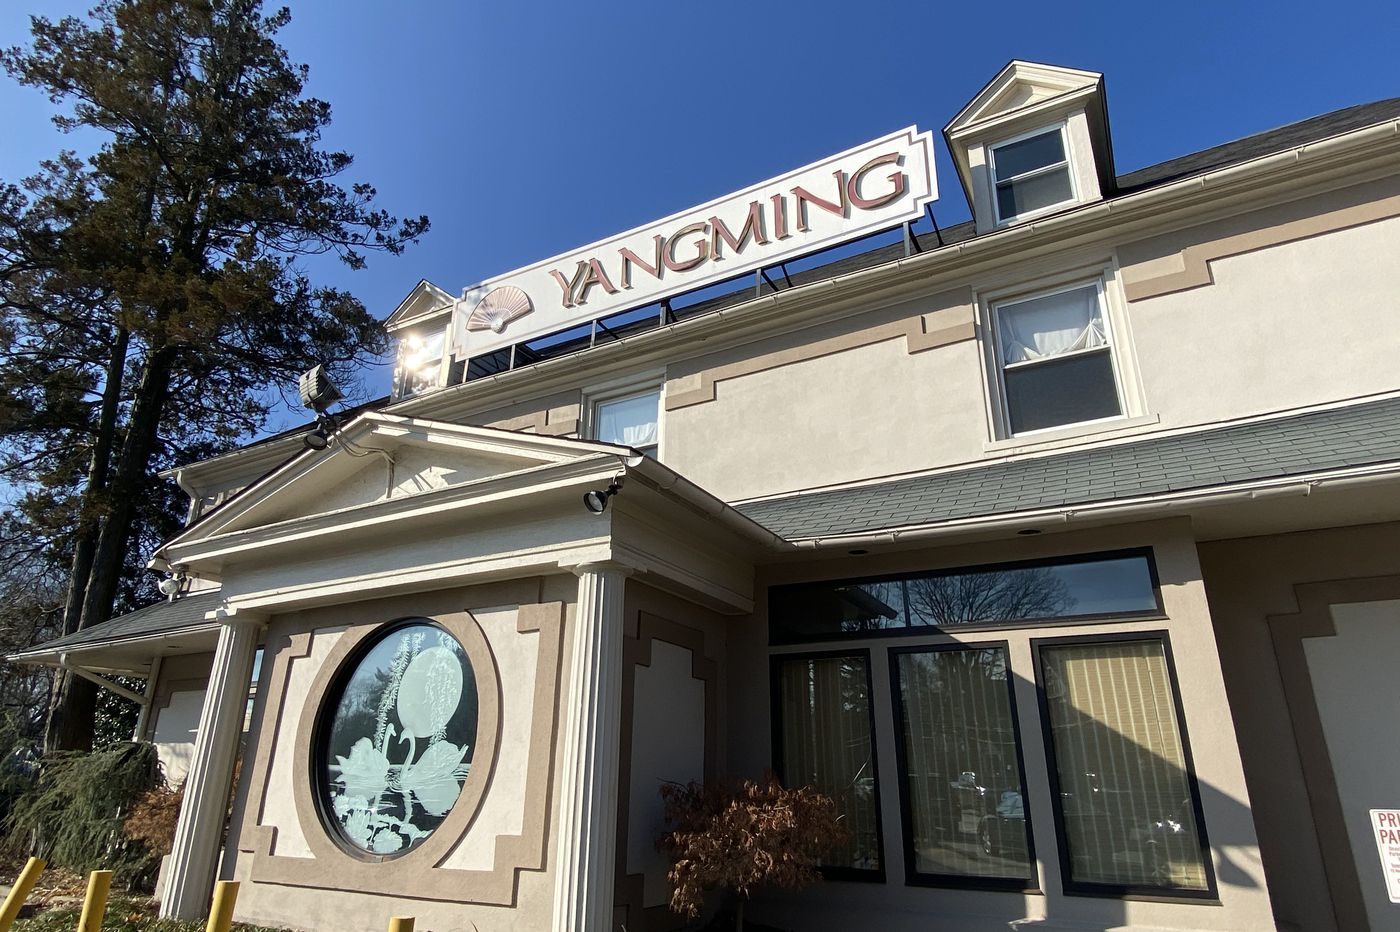 New Jin Ding Restaurant will Replace Outgoing Yangming in Bryn Mawr